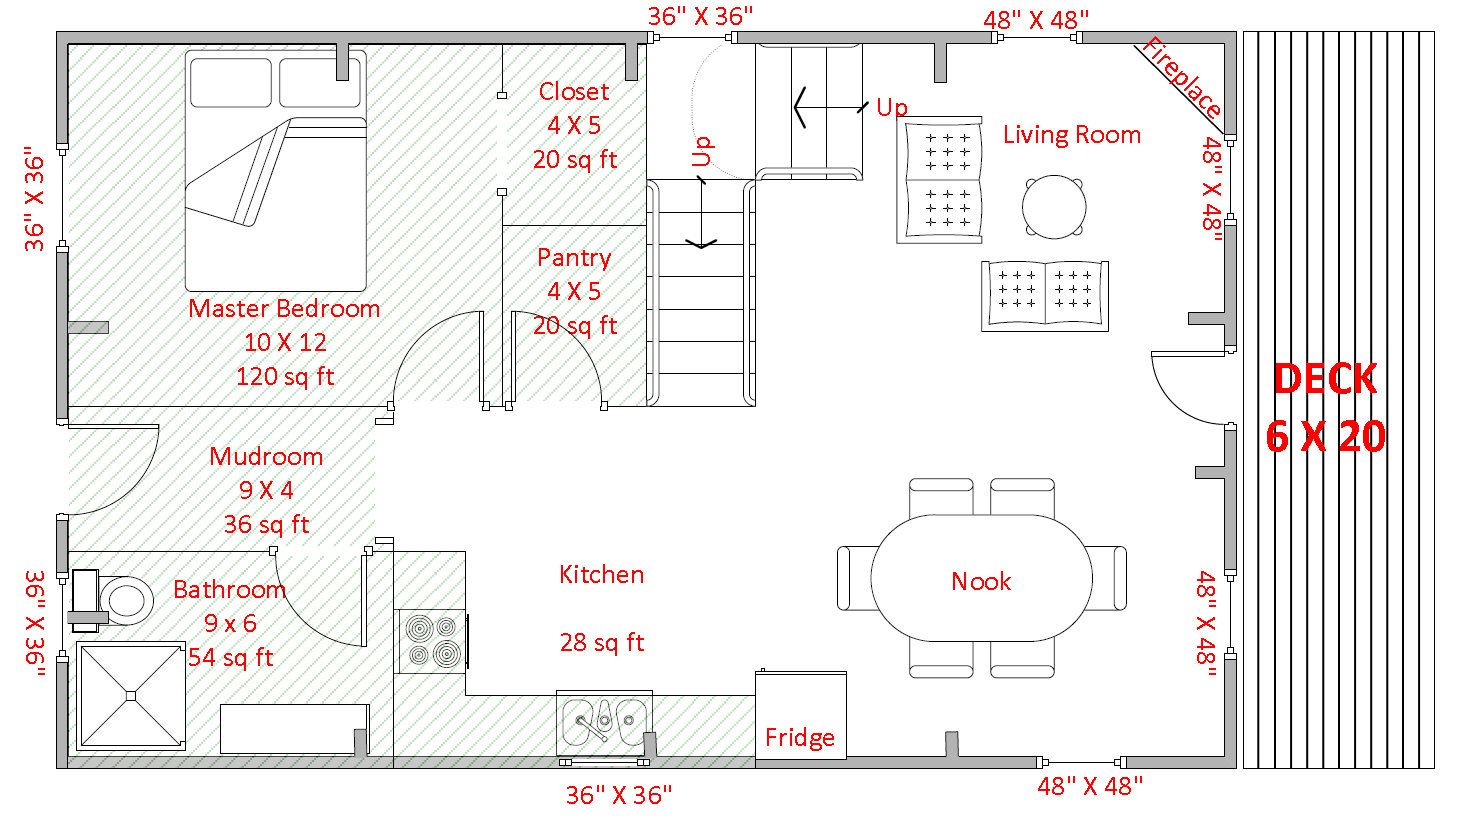 20 X 32 Sample Floor Plan Please Note All Floor Plans Are Samples And Can Be Customized To Suit Your Nee Cabin Floor Plans Floor Plans Bedroom Floor Plans